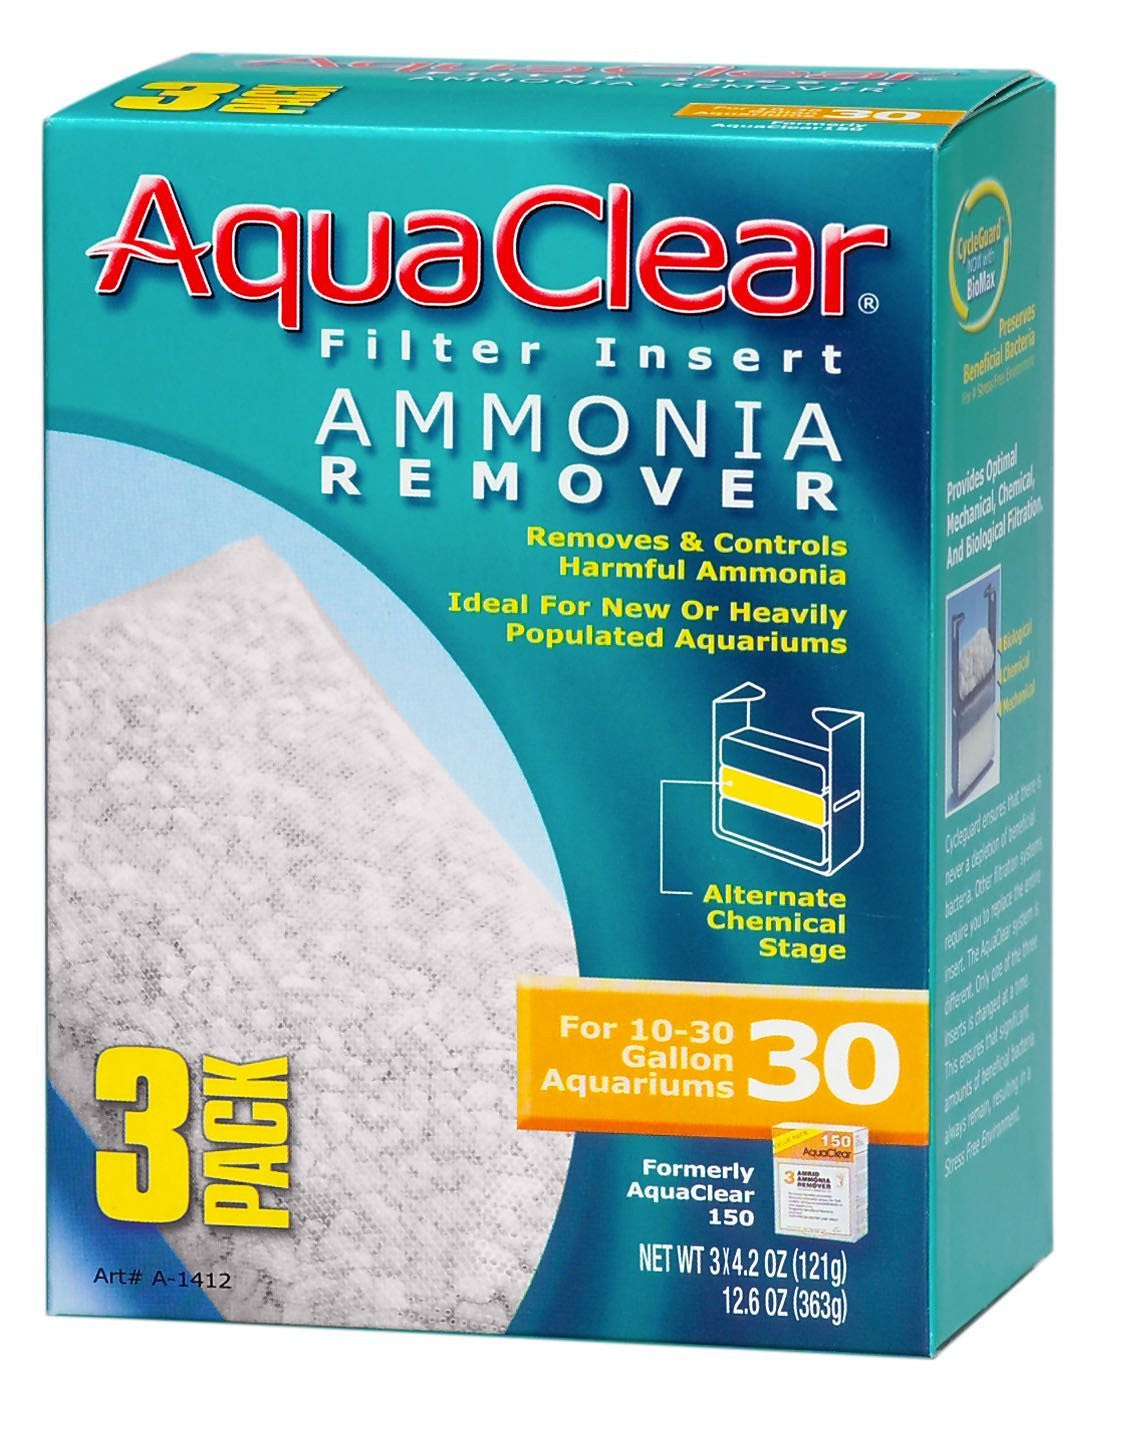 AquaClear Ammonia Remover Filter Insert - 3 Pack